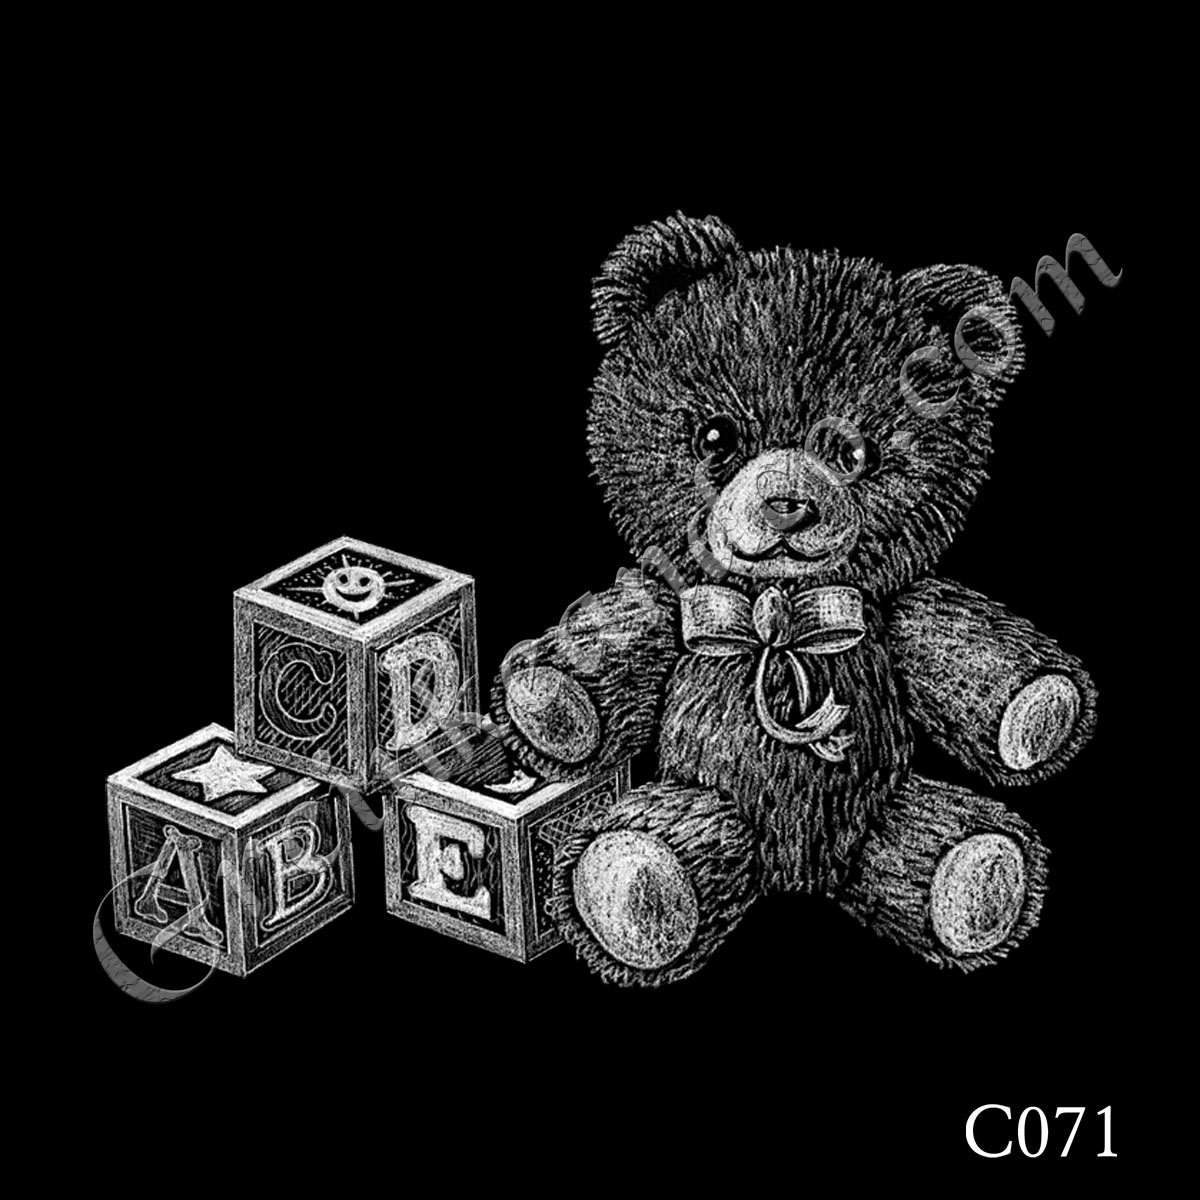 C071 - Teddy Bear with Blocks